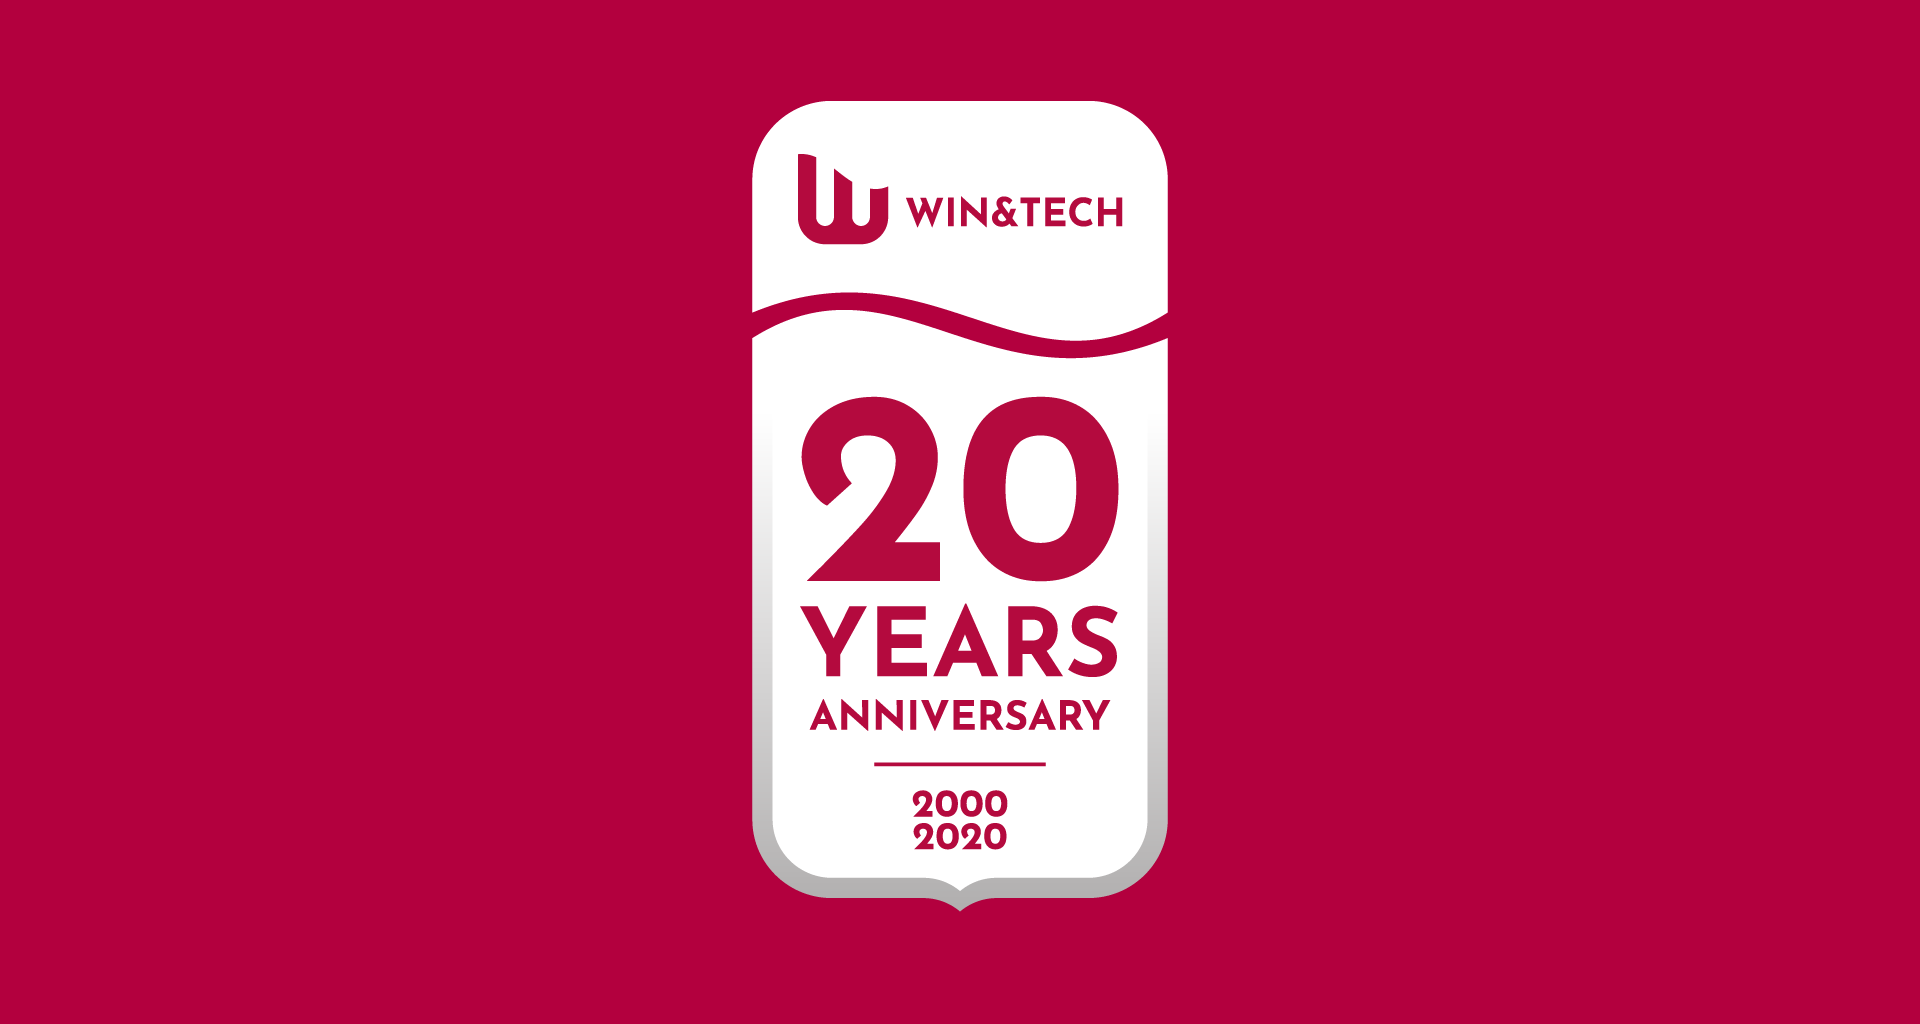 Win&Tech turns twenty!